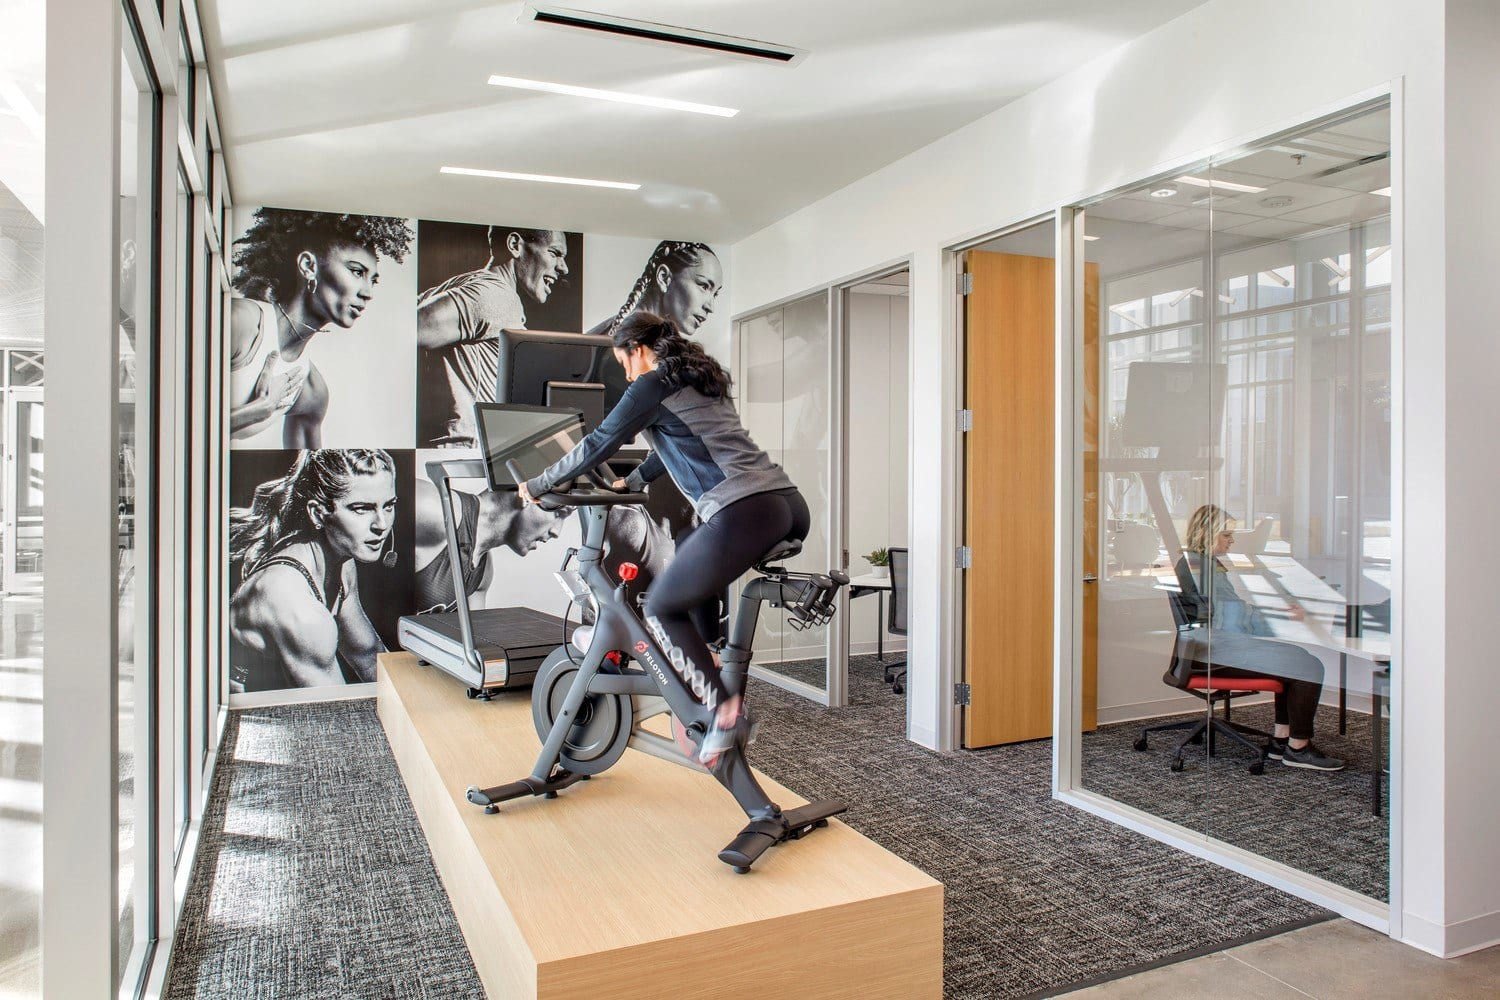 Large-scale wall graphics at the Peloton Customer Care Center.